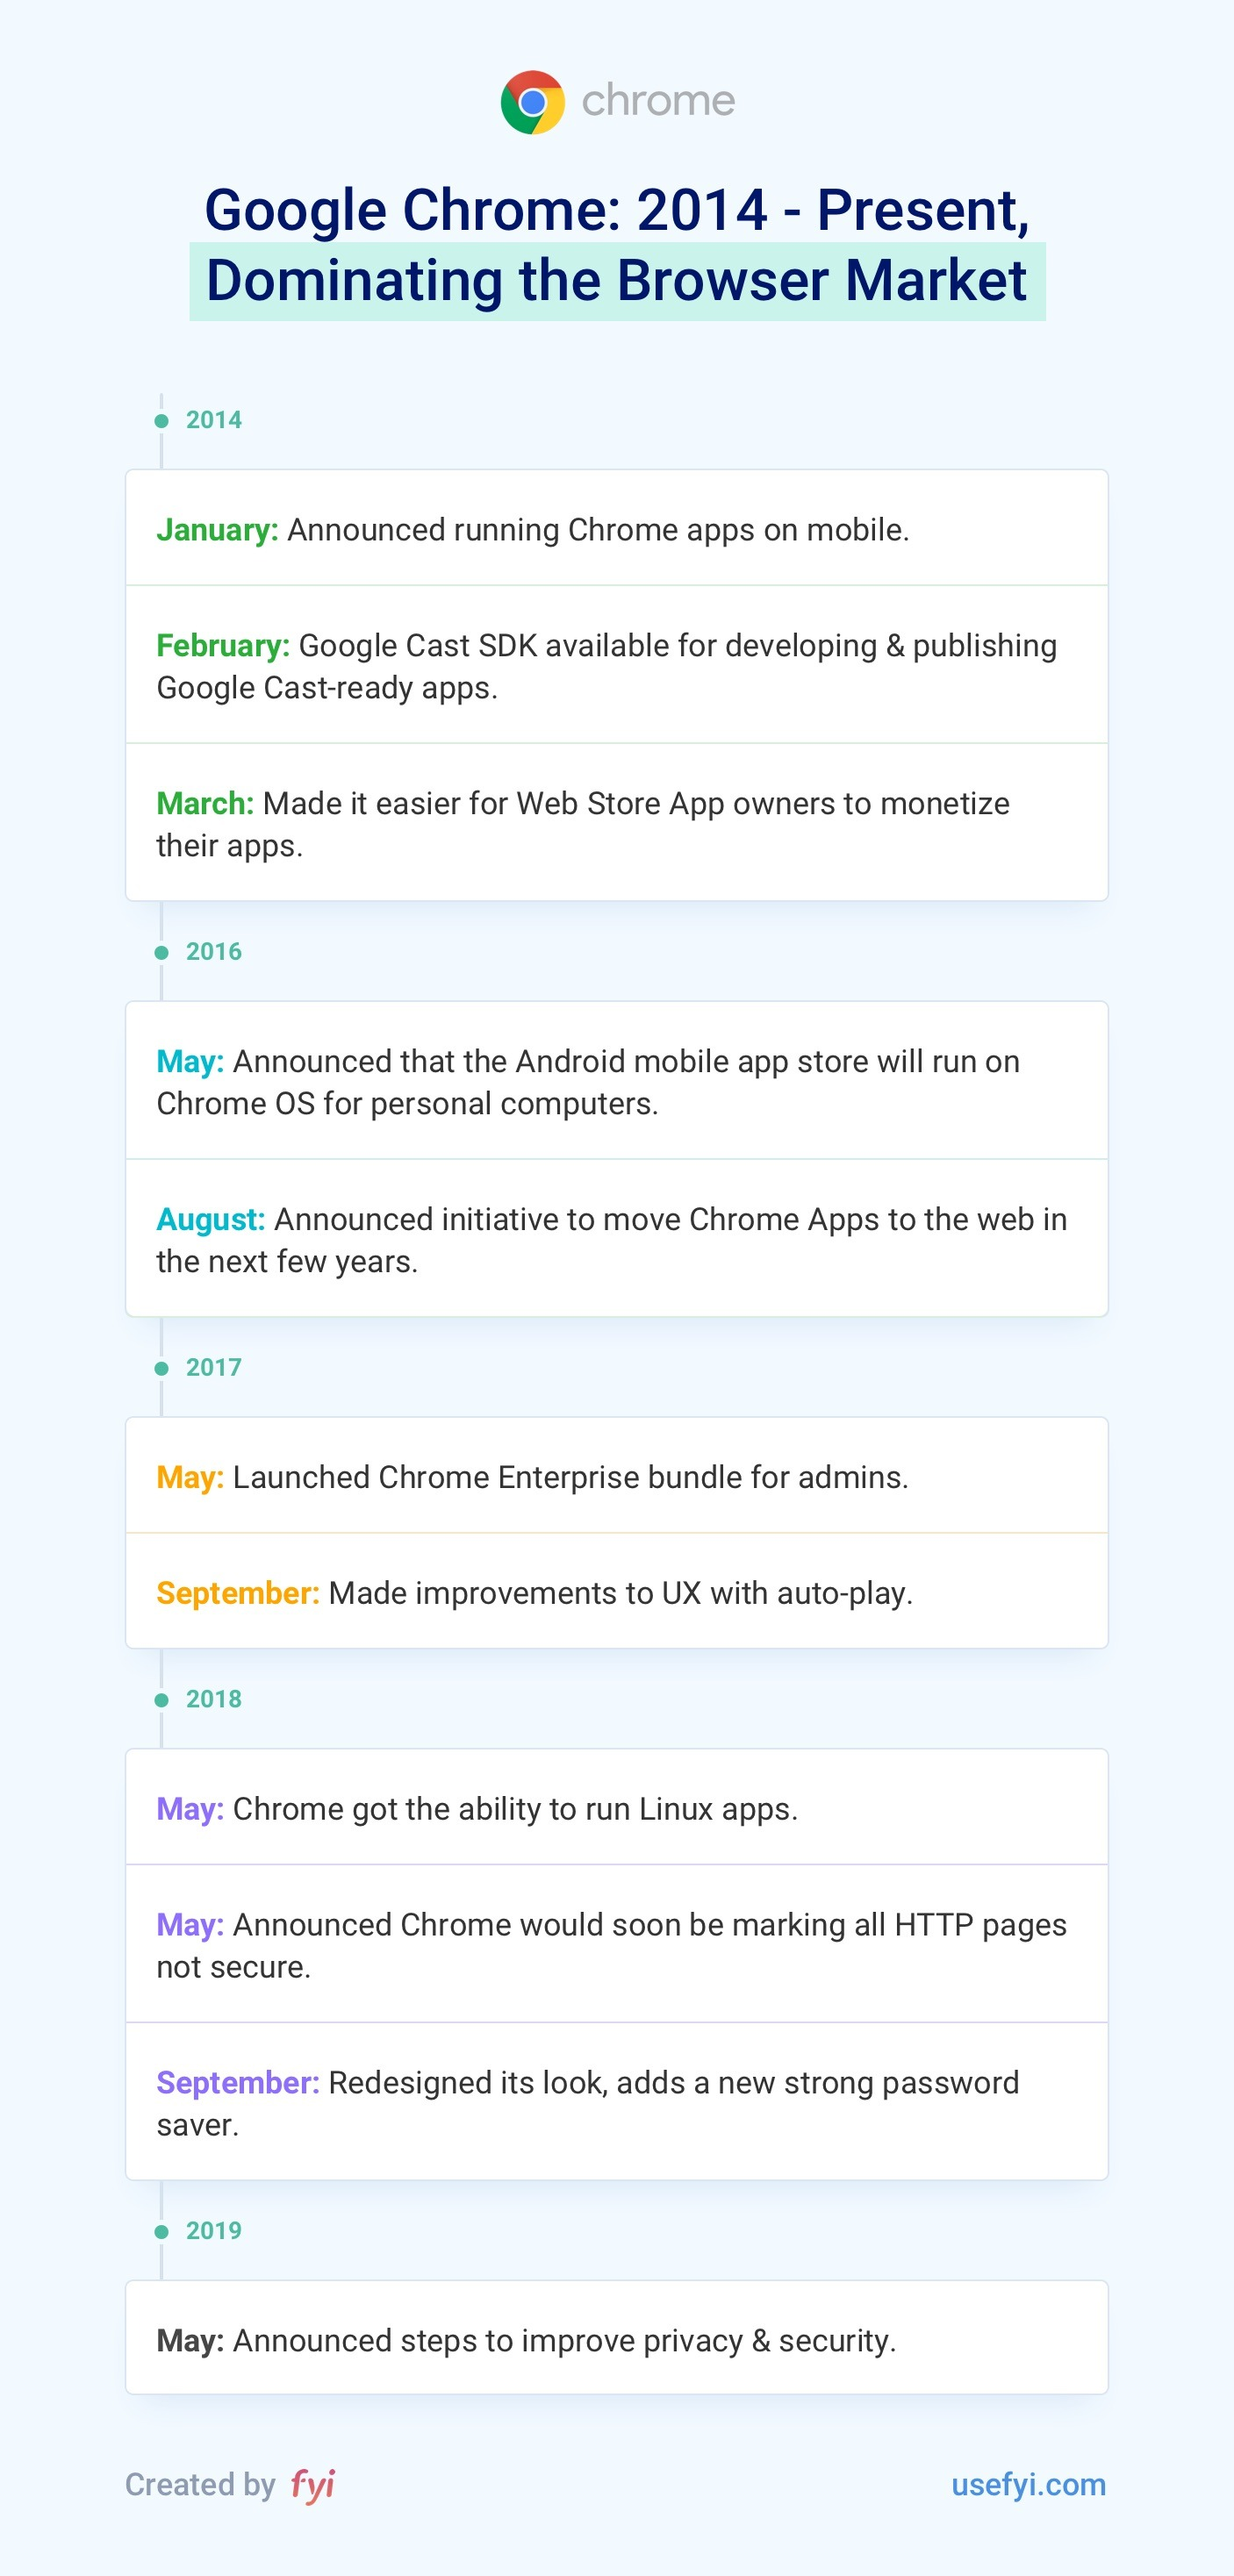 Chrome 2014 to Present